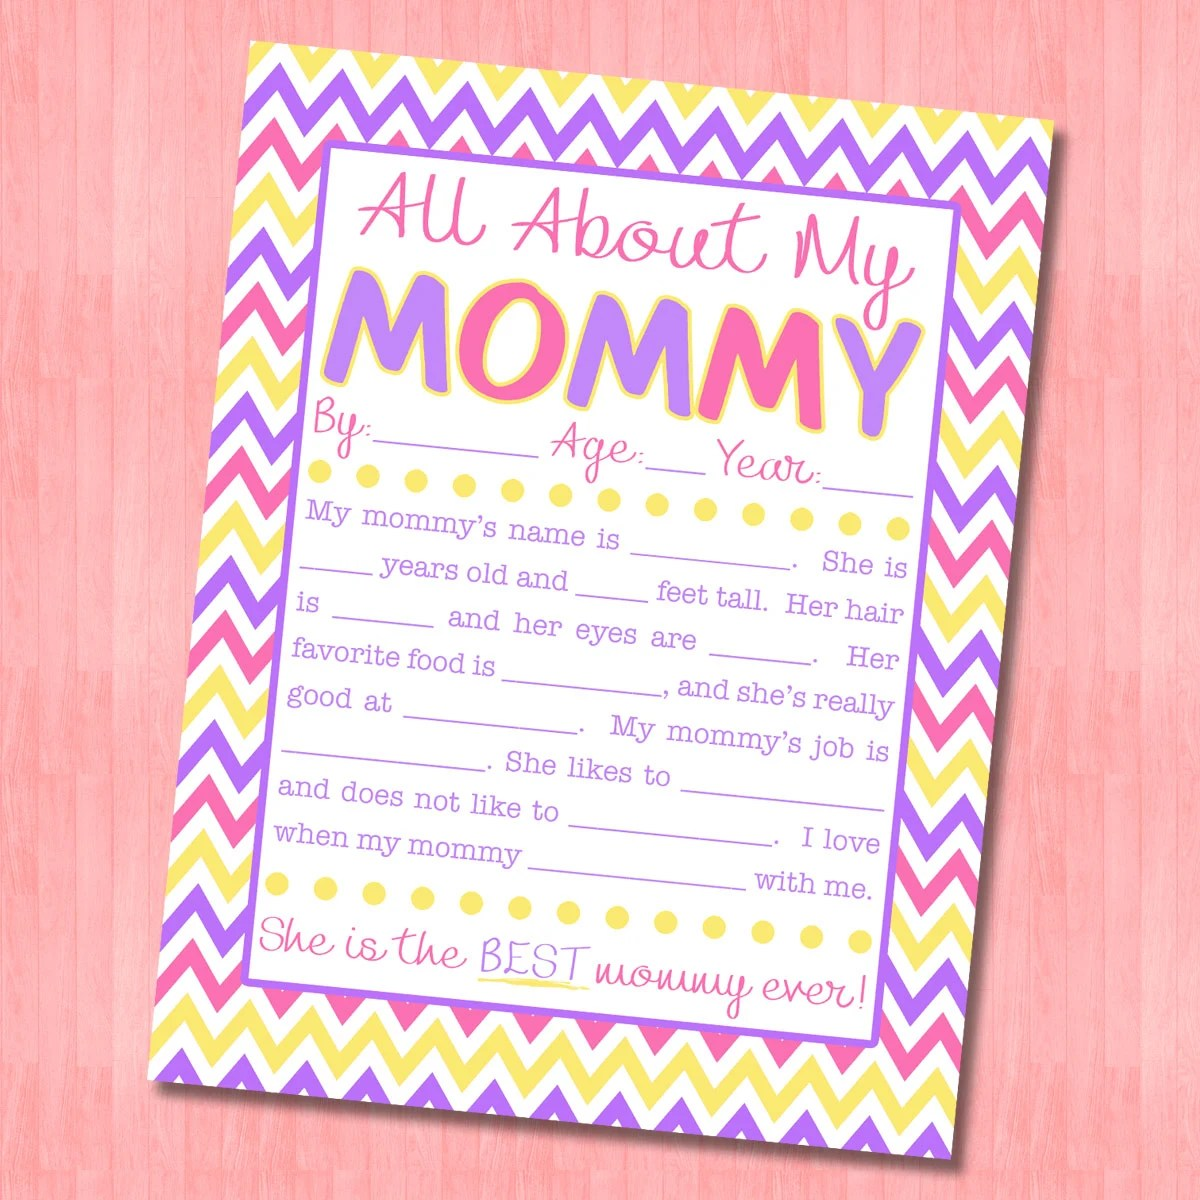 All About My Mommy Interview with FREE Printable!